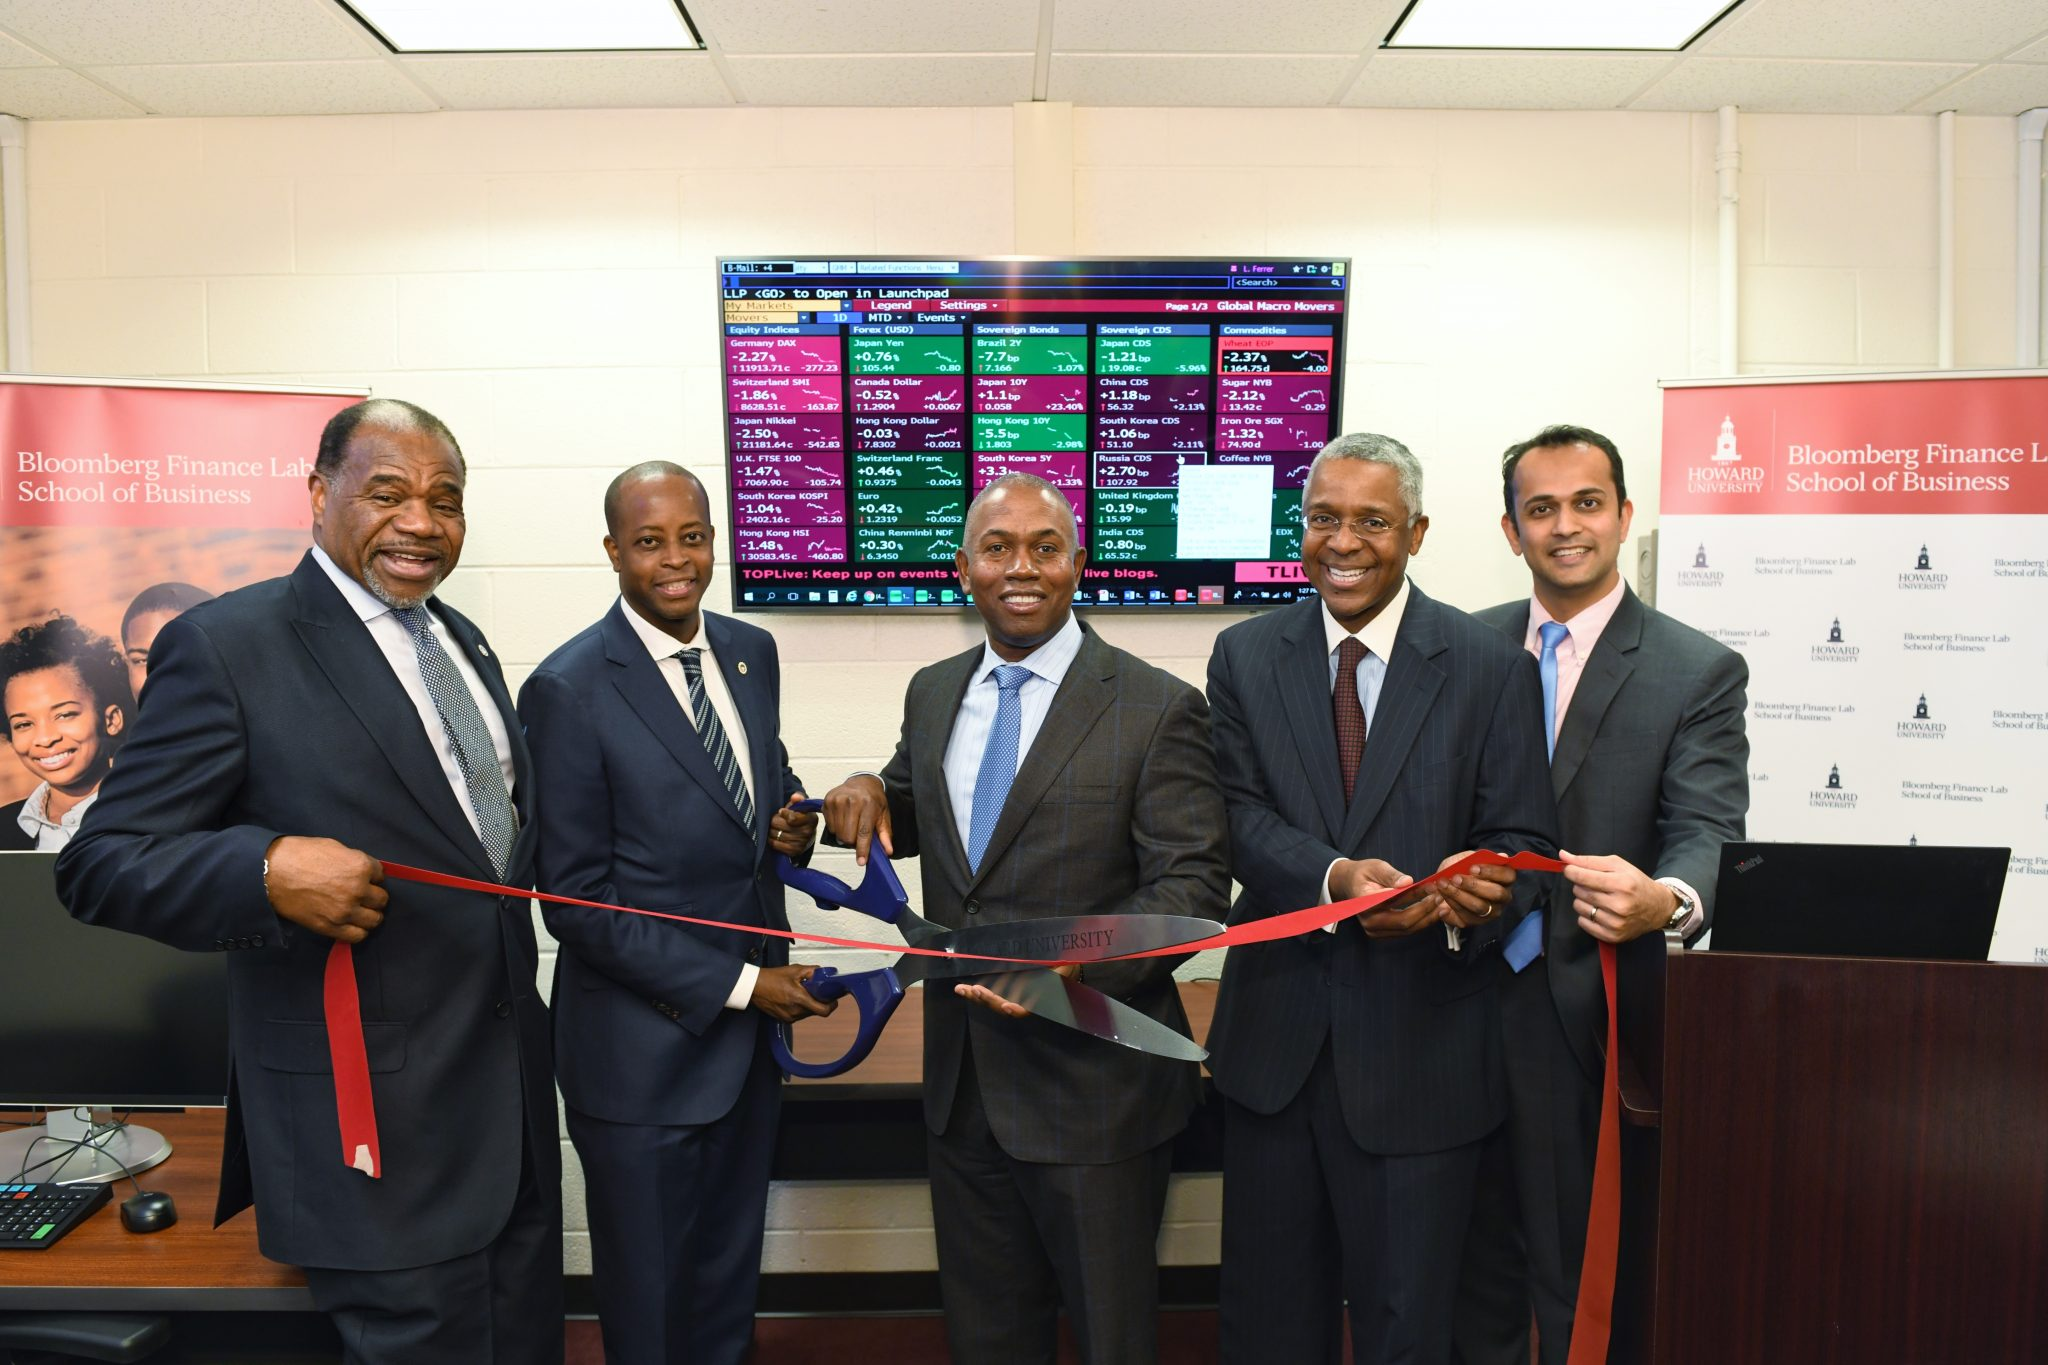 howard university at bloomberg